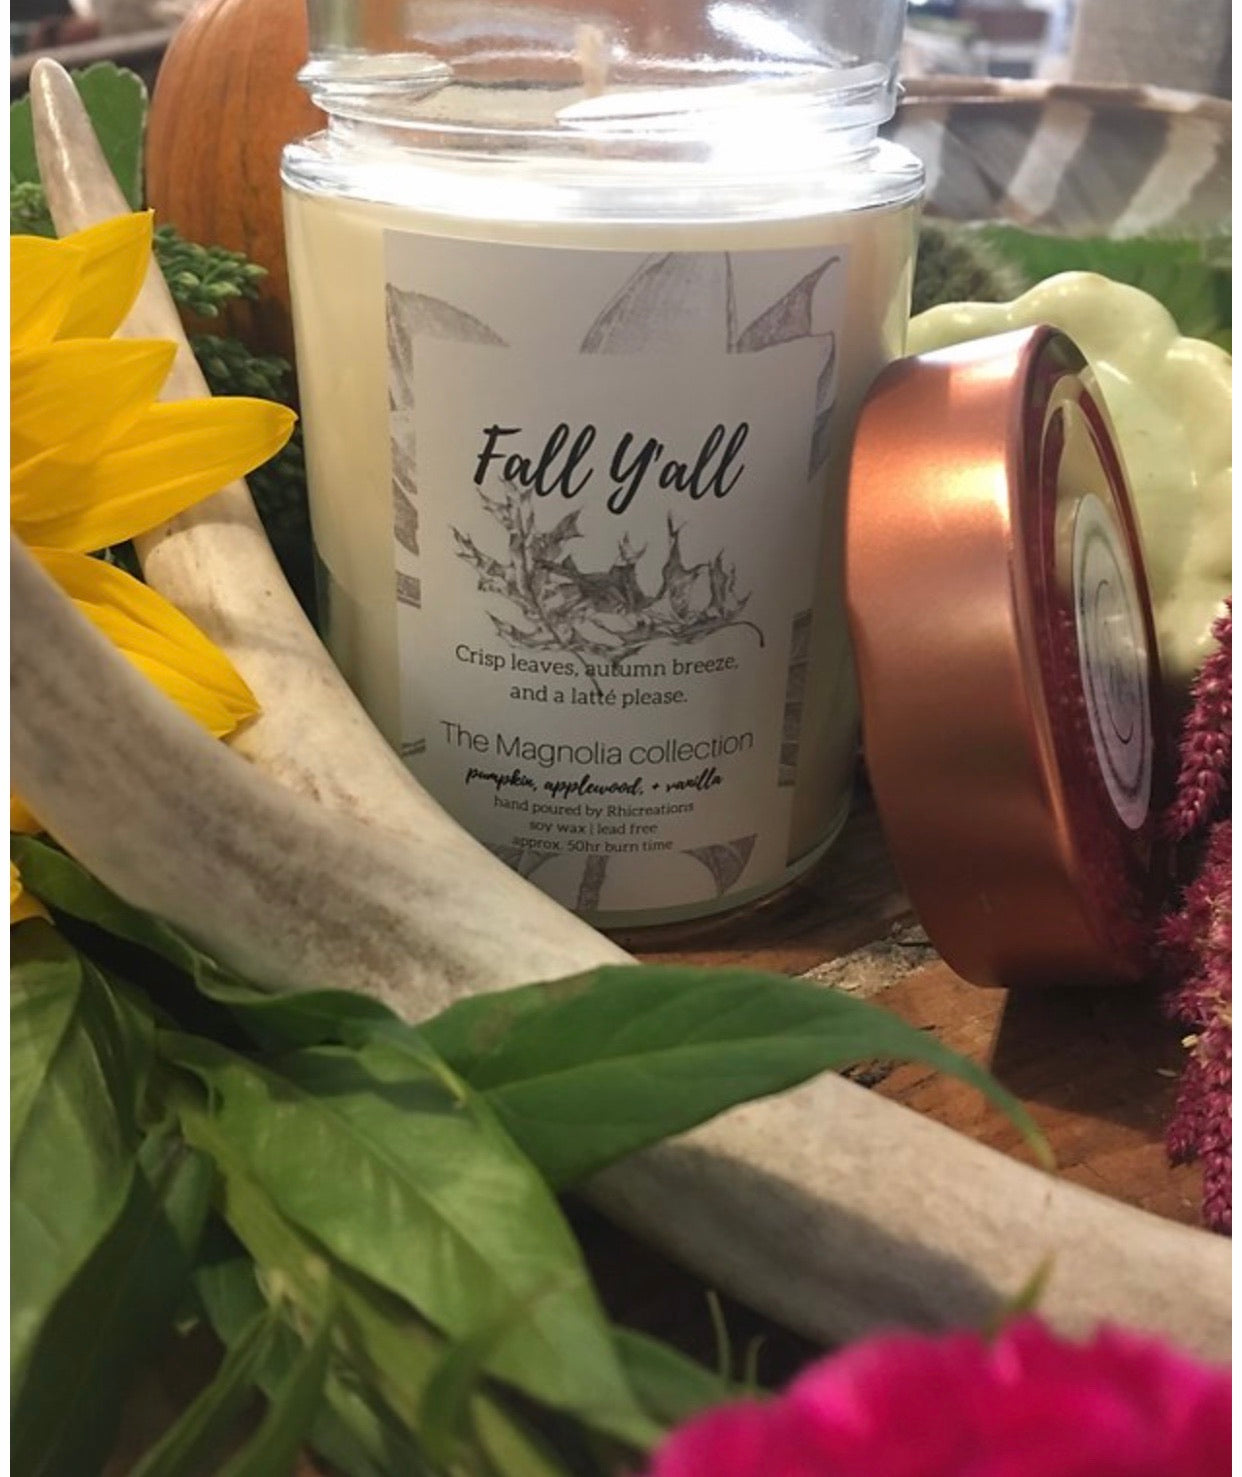 Fall Y'all Candle - The Magnolia Collection